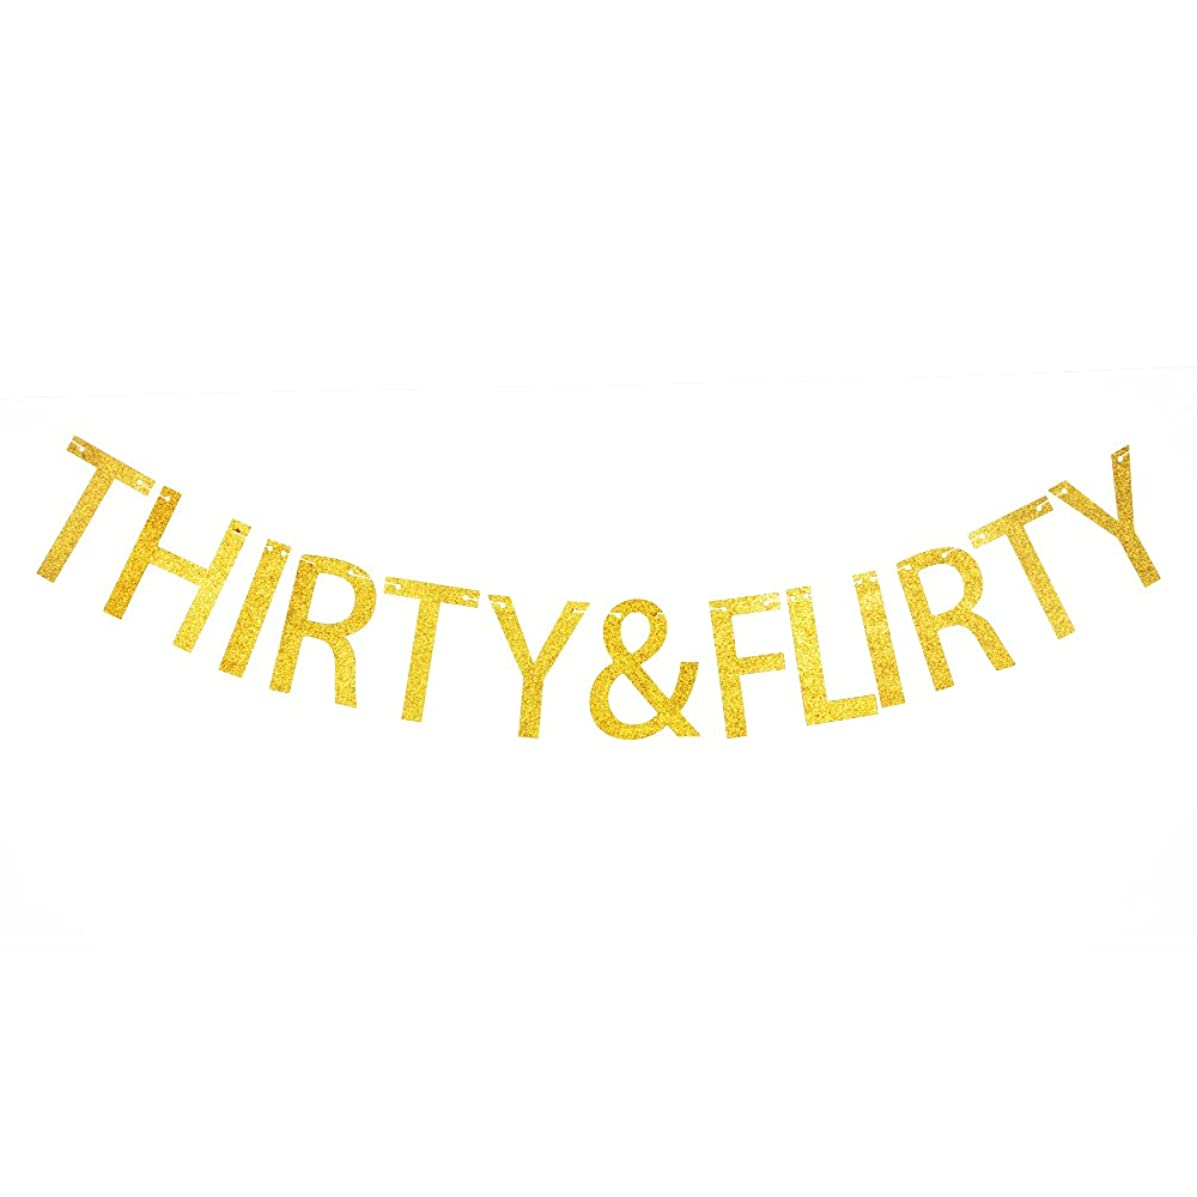 Thirty & Flirty Banner, Funny Gold Glitter Paper Sign fo 30th/30 Years Old Birthday Party Decorations